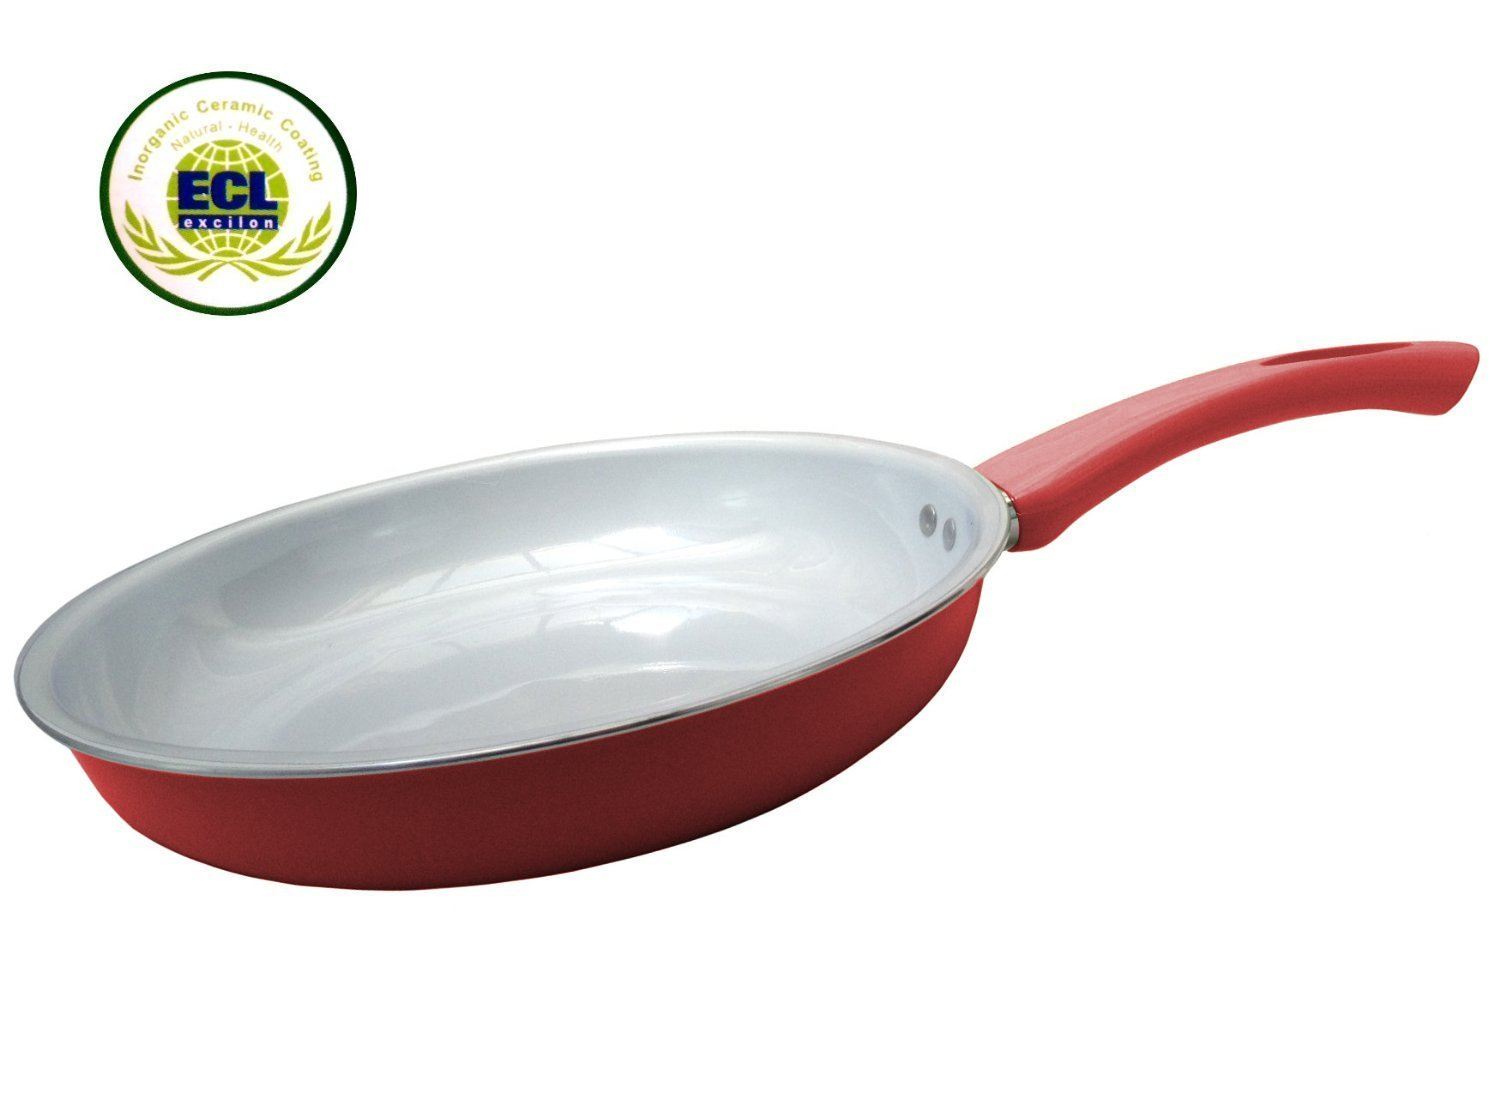 Royal Organic Red 8'' Ceramic Non-Stick Coating Fry Pan Stay Cool Handle